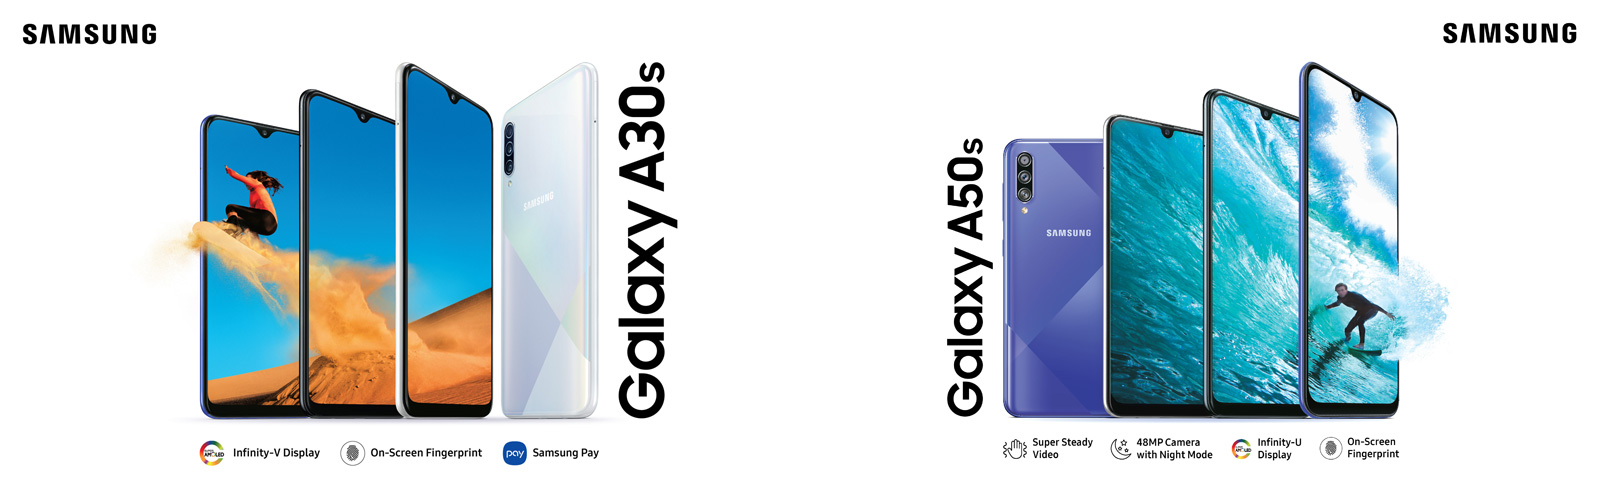 Samsung launches the Galaxy A30s and Galaxy A50s